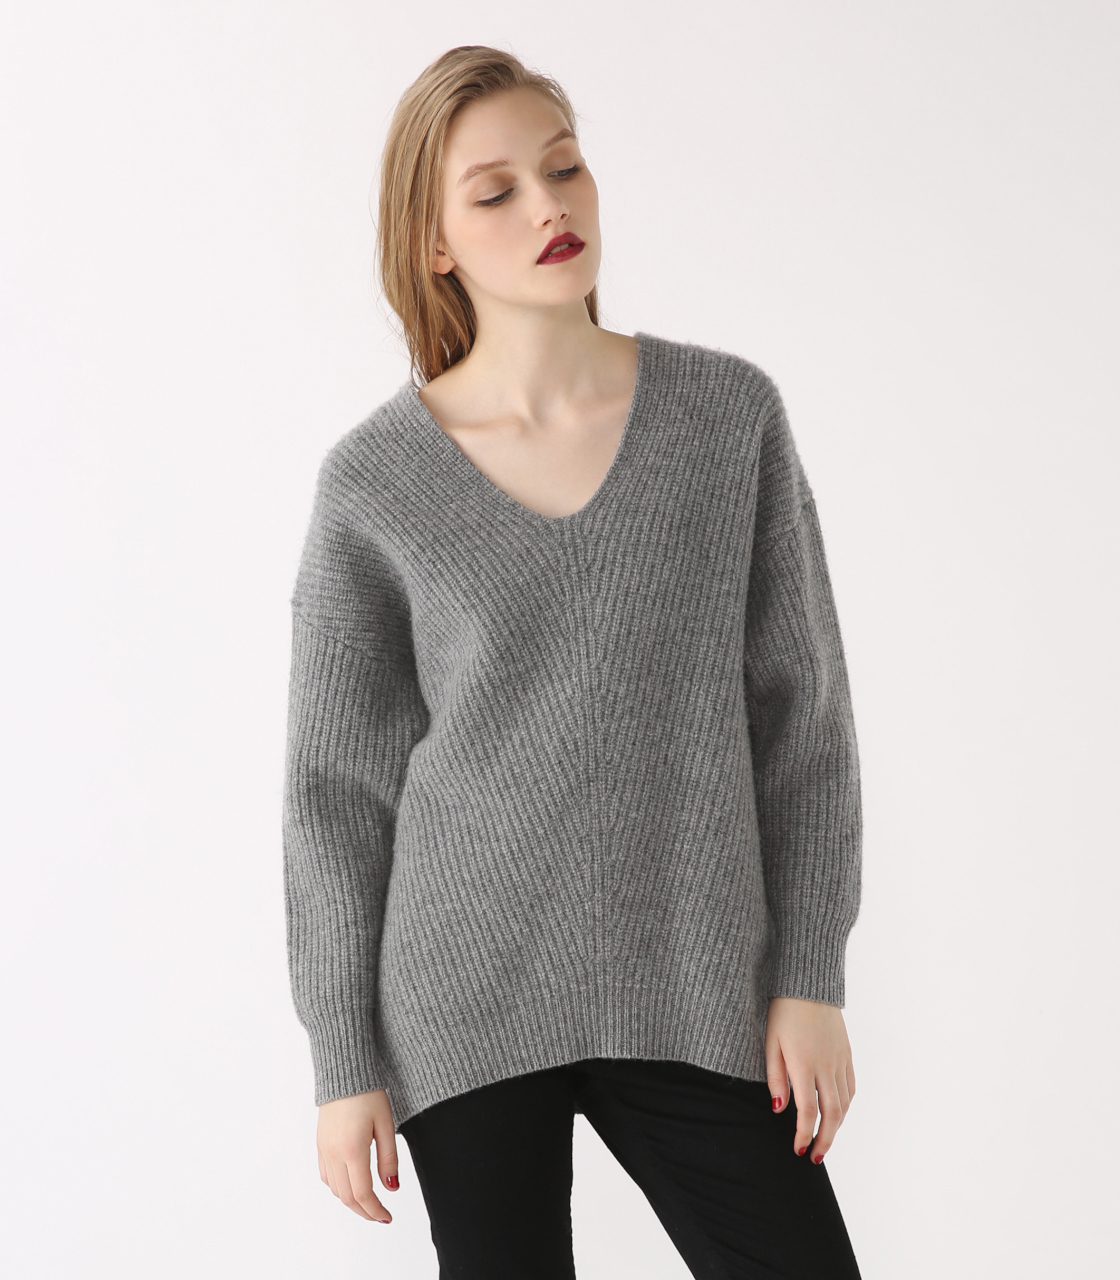 Vneck wool knit